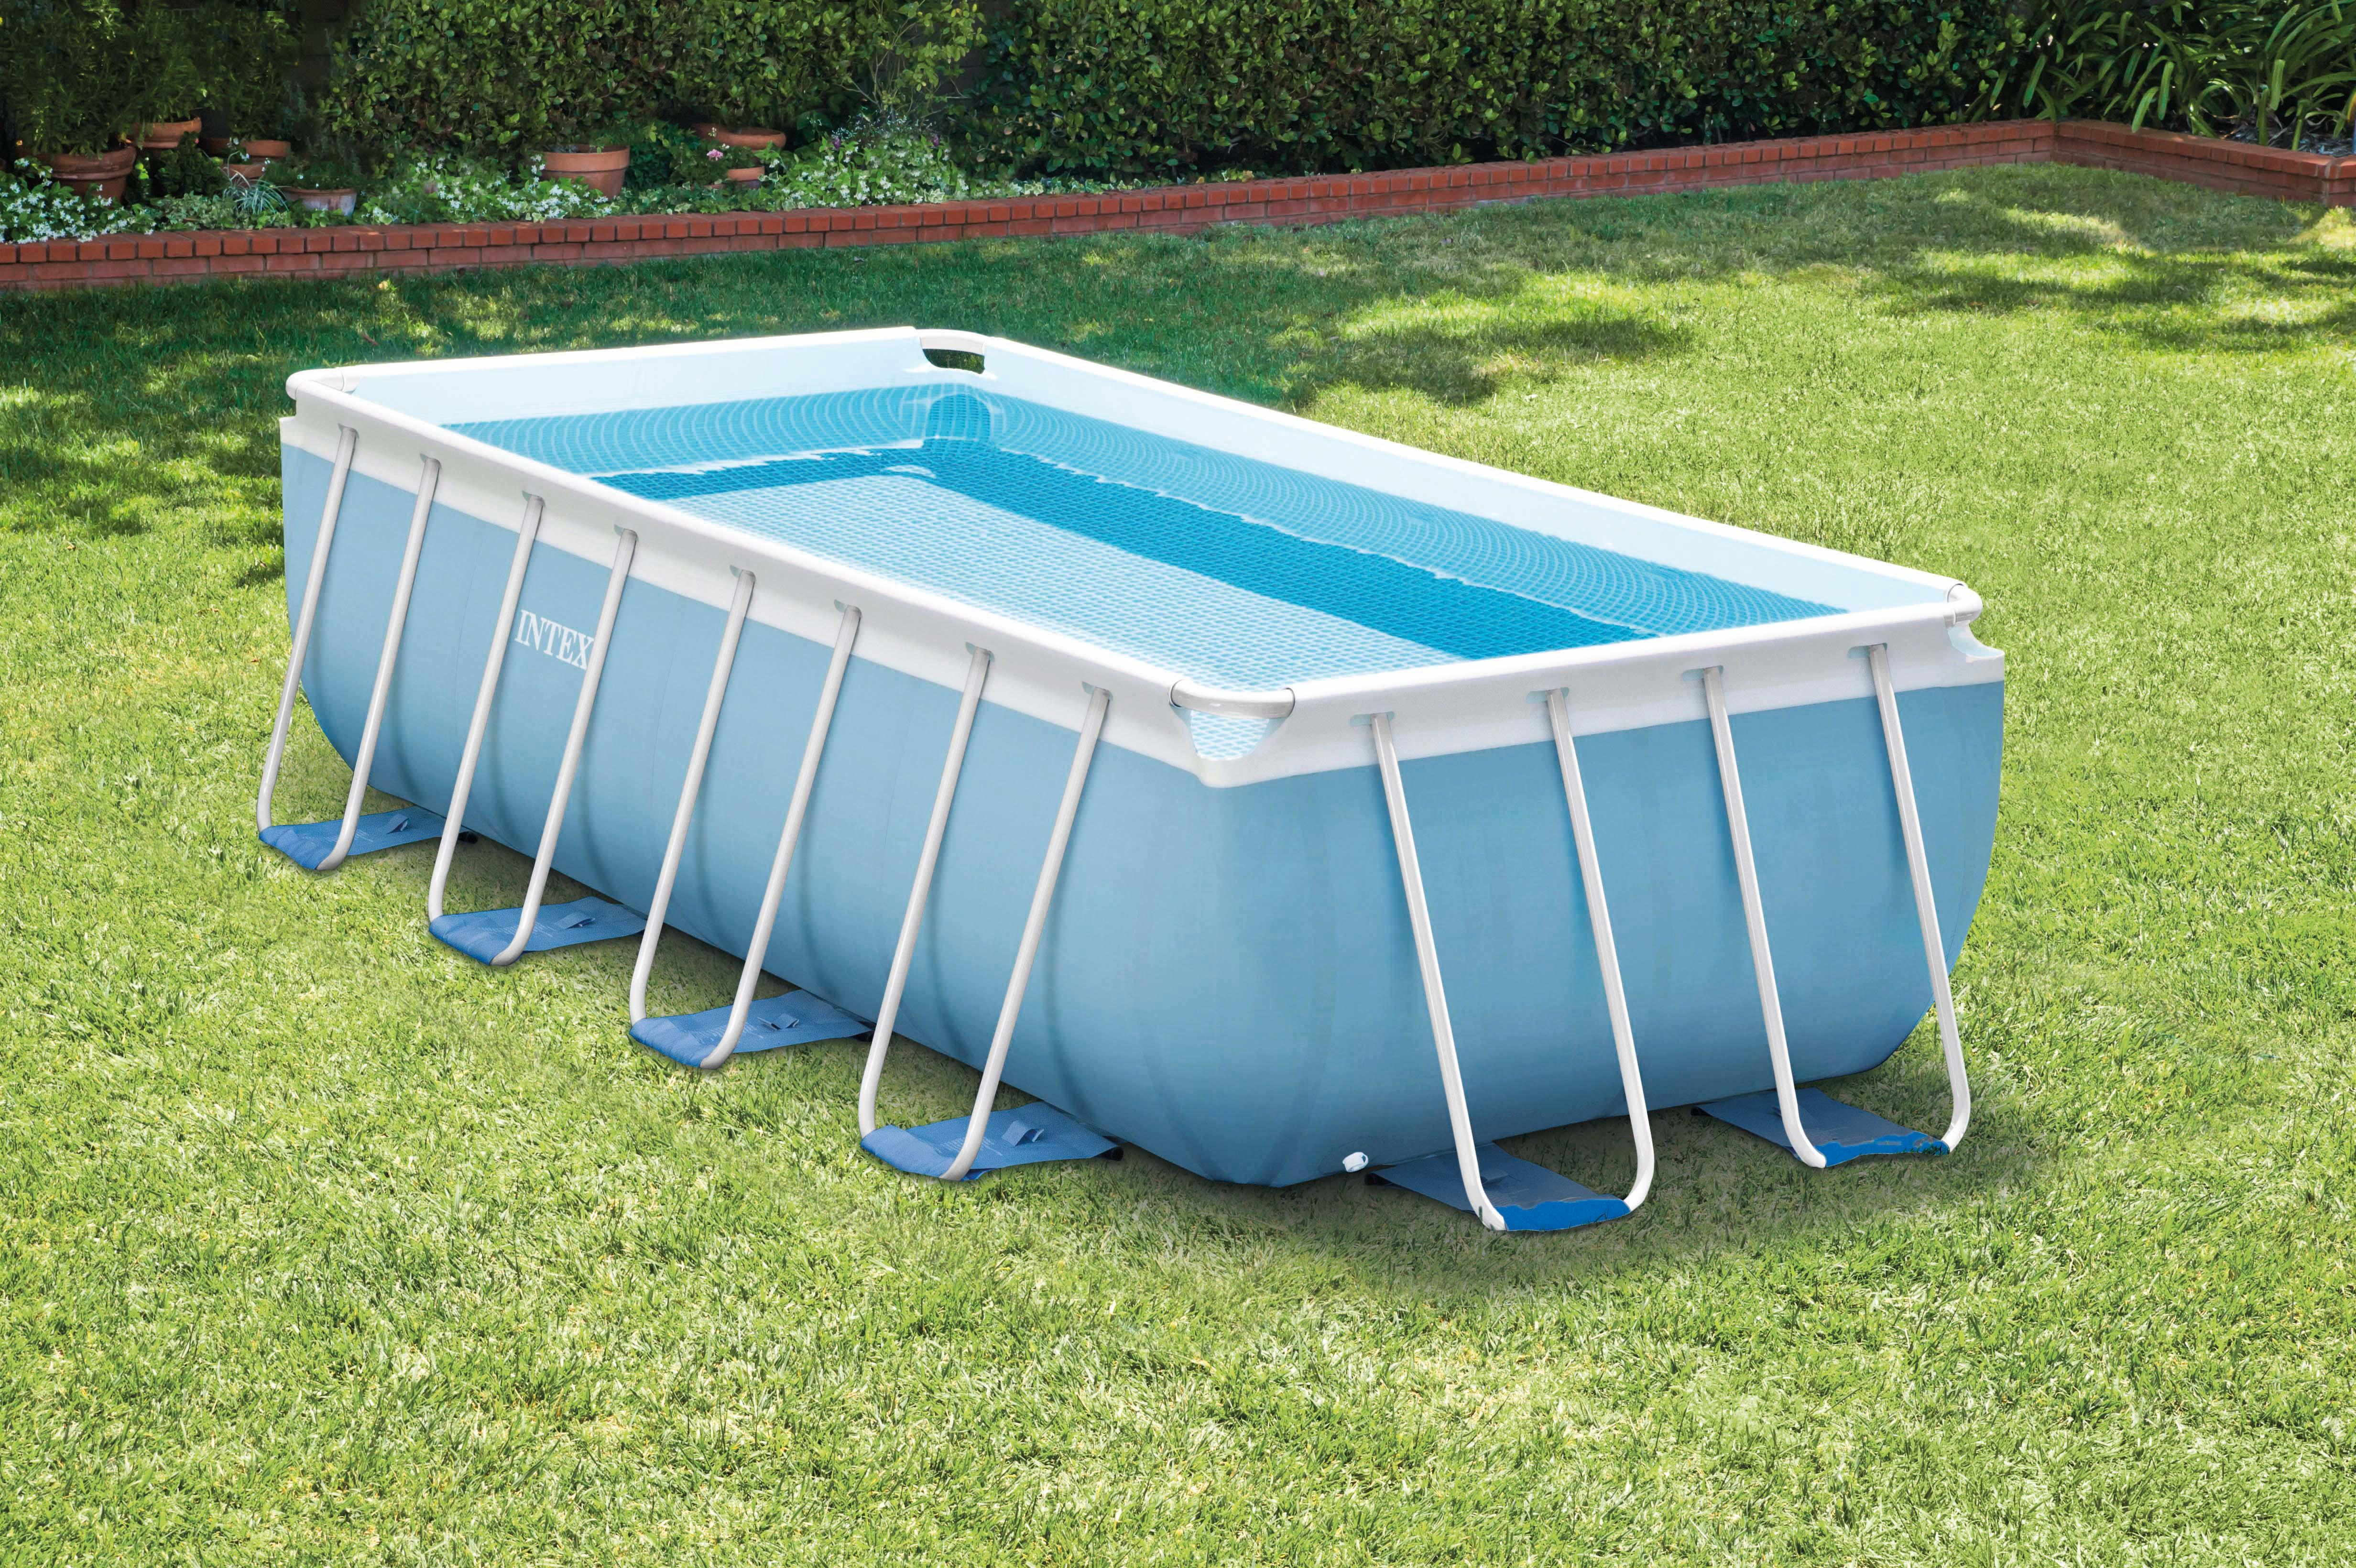 Intex 28316 piscina prisma frame 400x200x100 cm con pompa for Piscine intex amazon